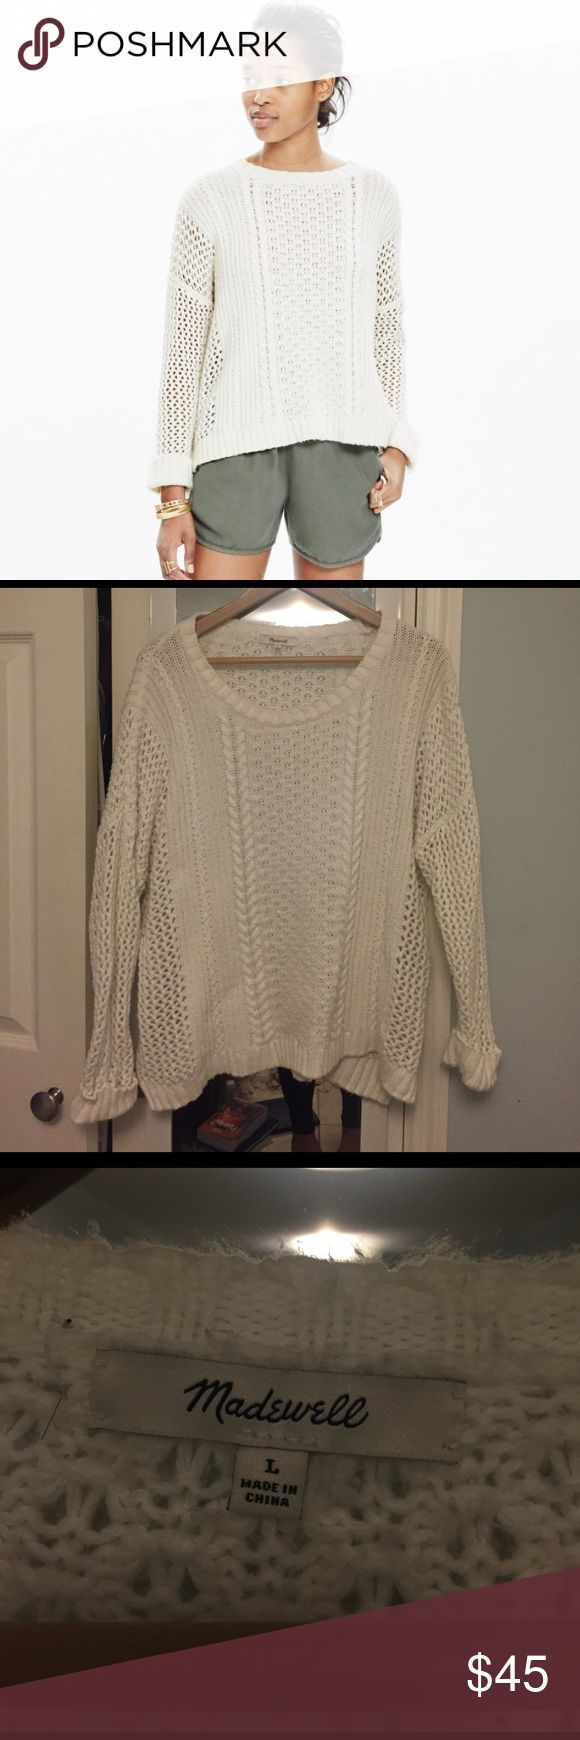 Madewell plaza pullover sweater SOLD OUT ONLINE! In great condition & no underarm stains. Lightweight sweater, great for transitioning from winter to spring! Madewell Sweaters Crew & Scoop Necks